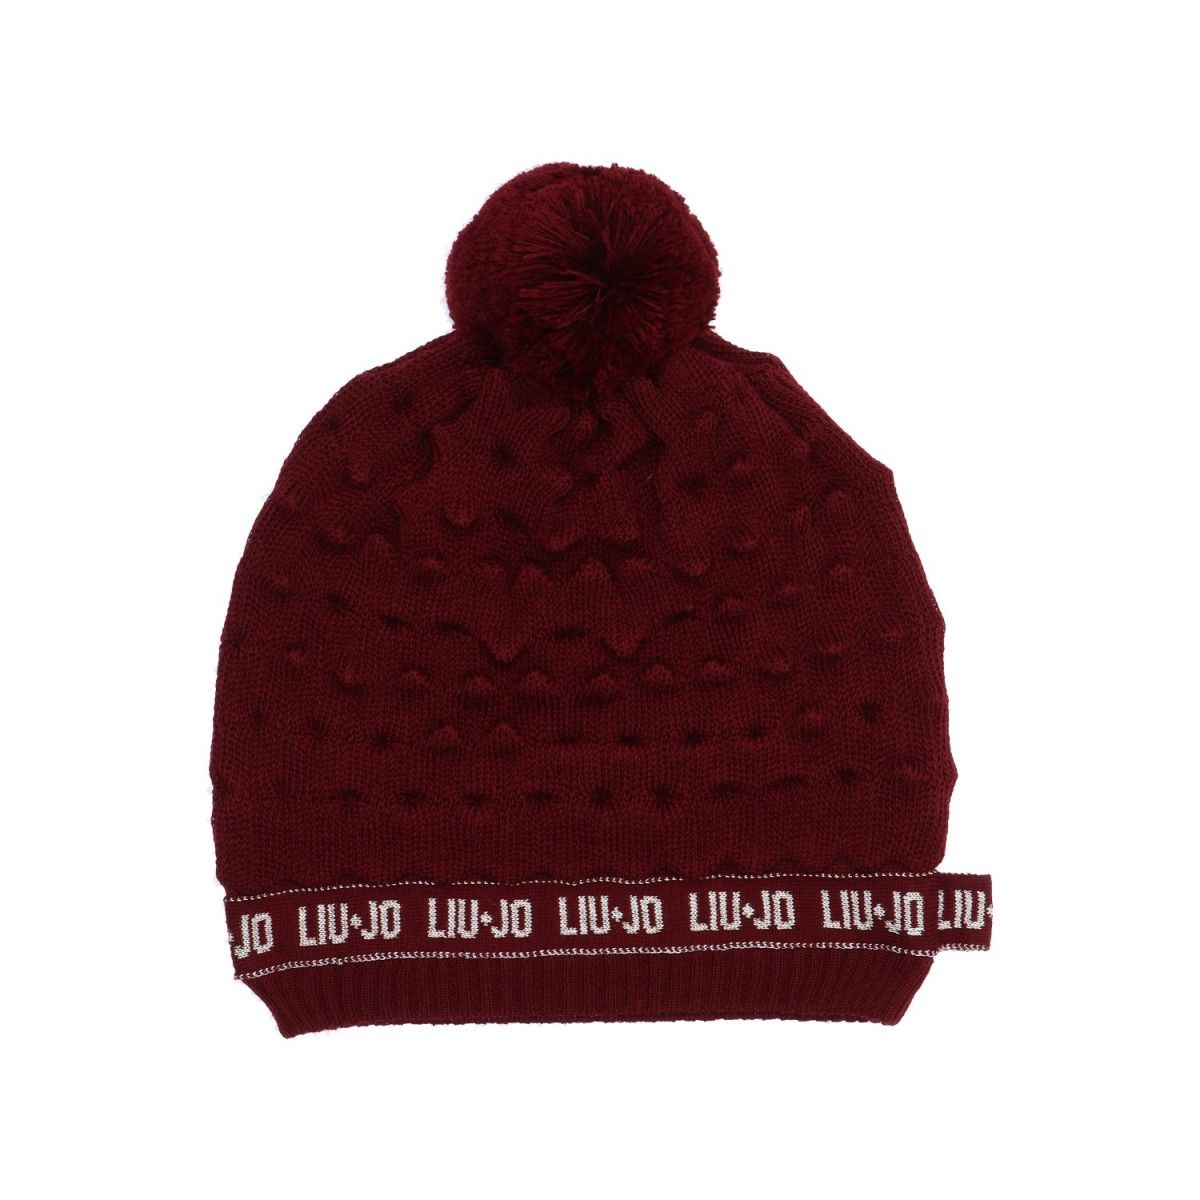 Liu jo Cappello Bordeaux...